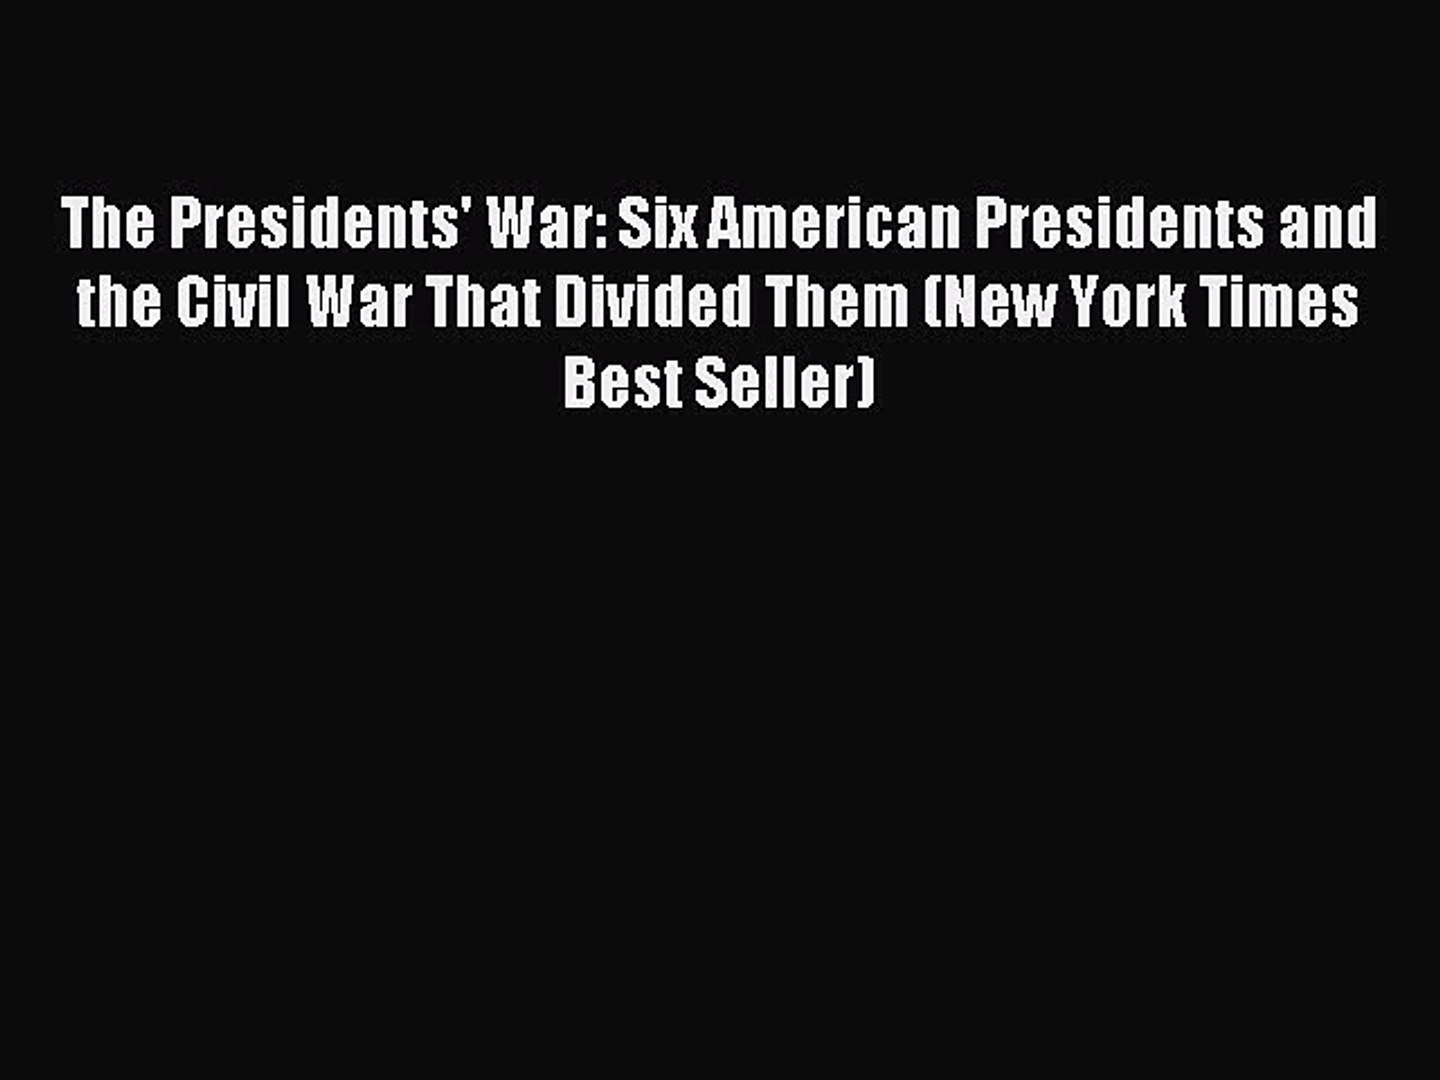 Read The Presidents' War: Six American Presidents and the Civil War That Divided Them (New